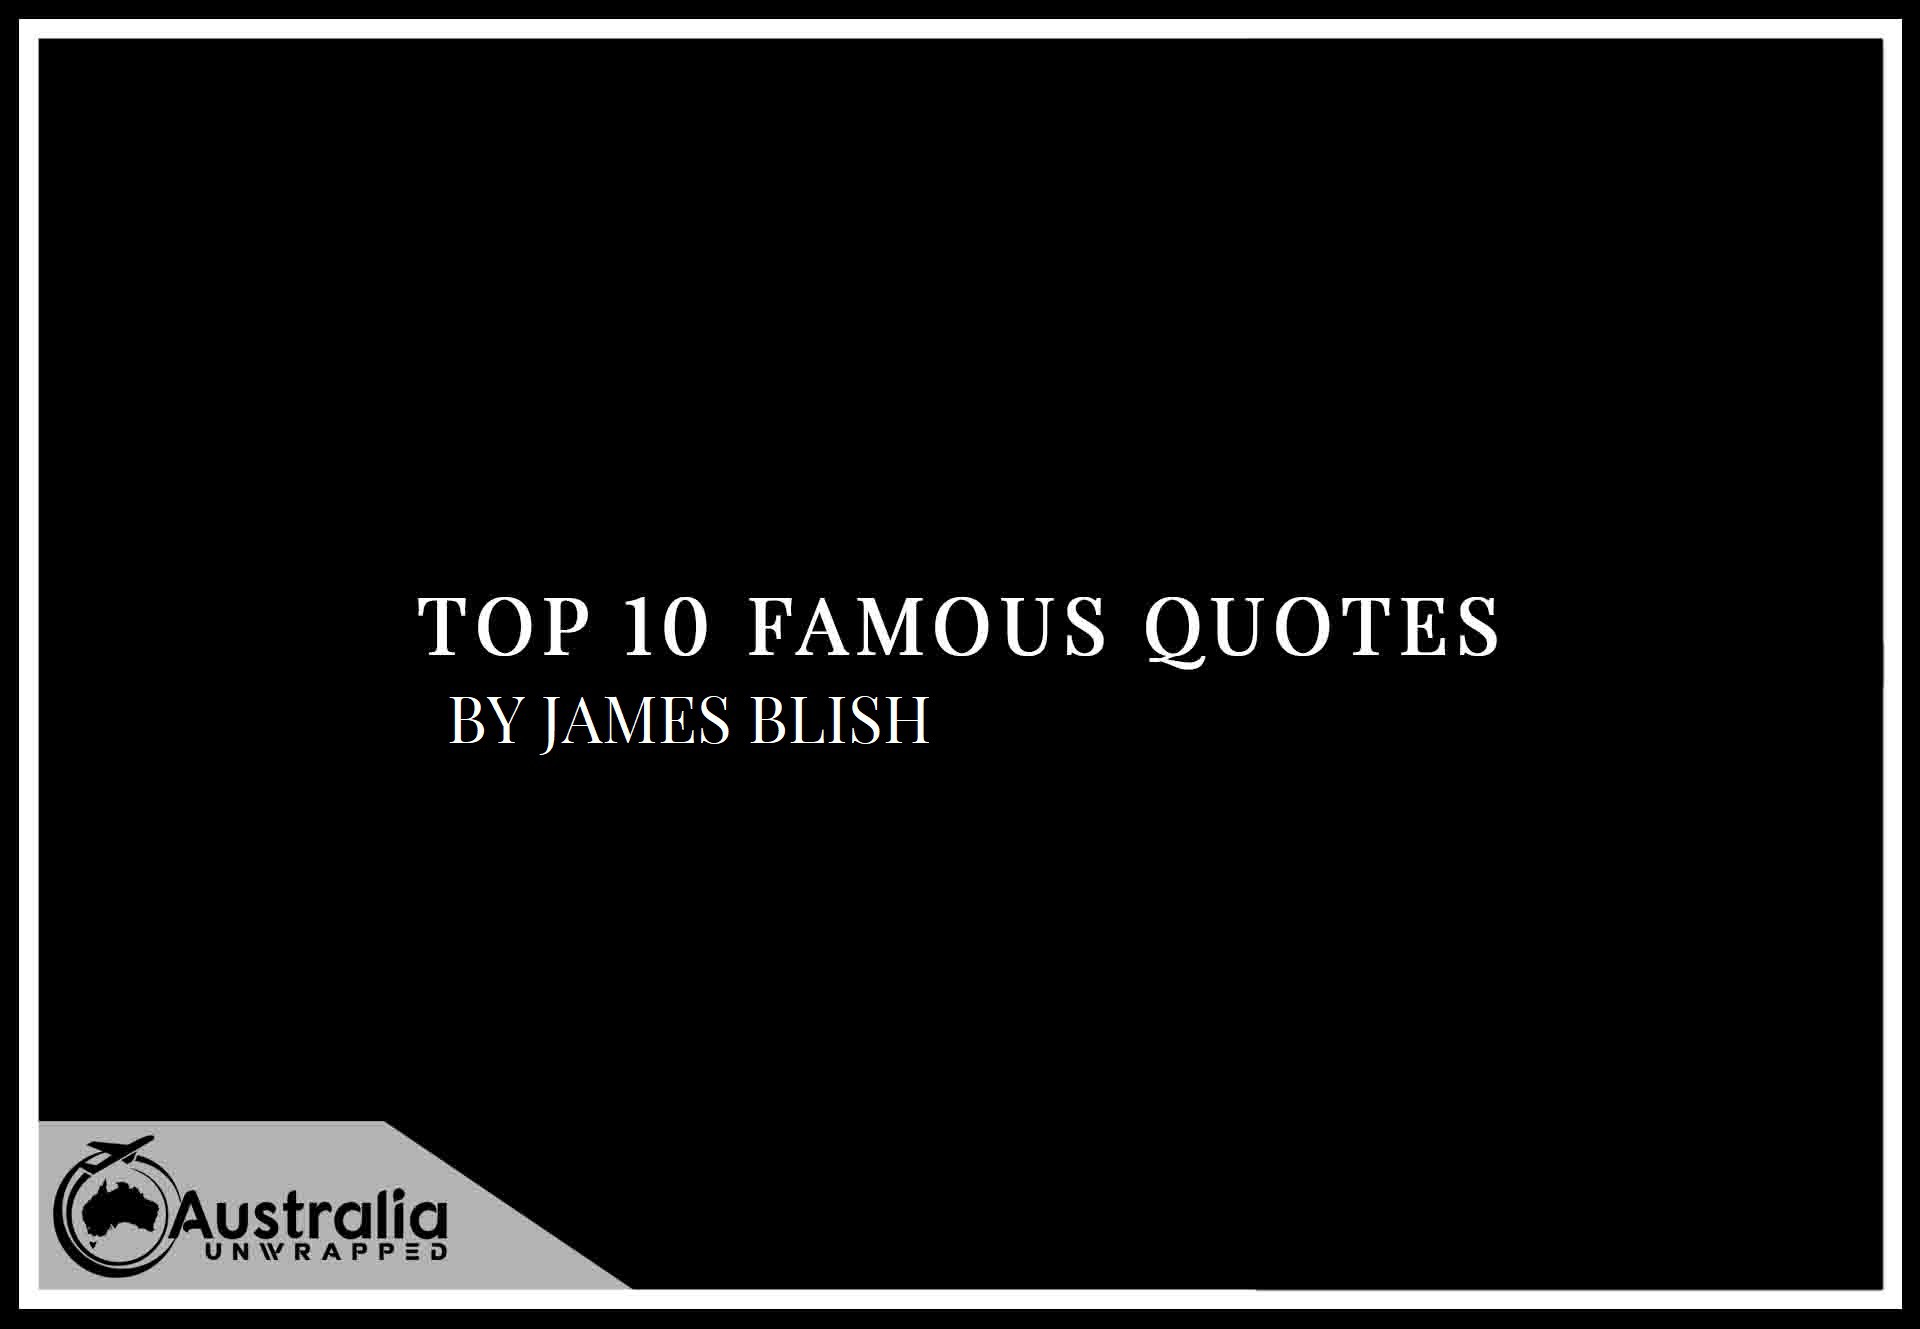 Top 10 Famous Quotes by Author James Blish